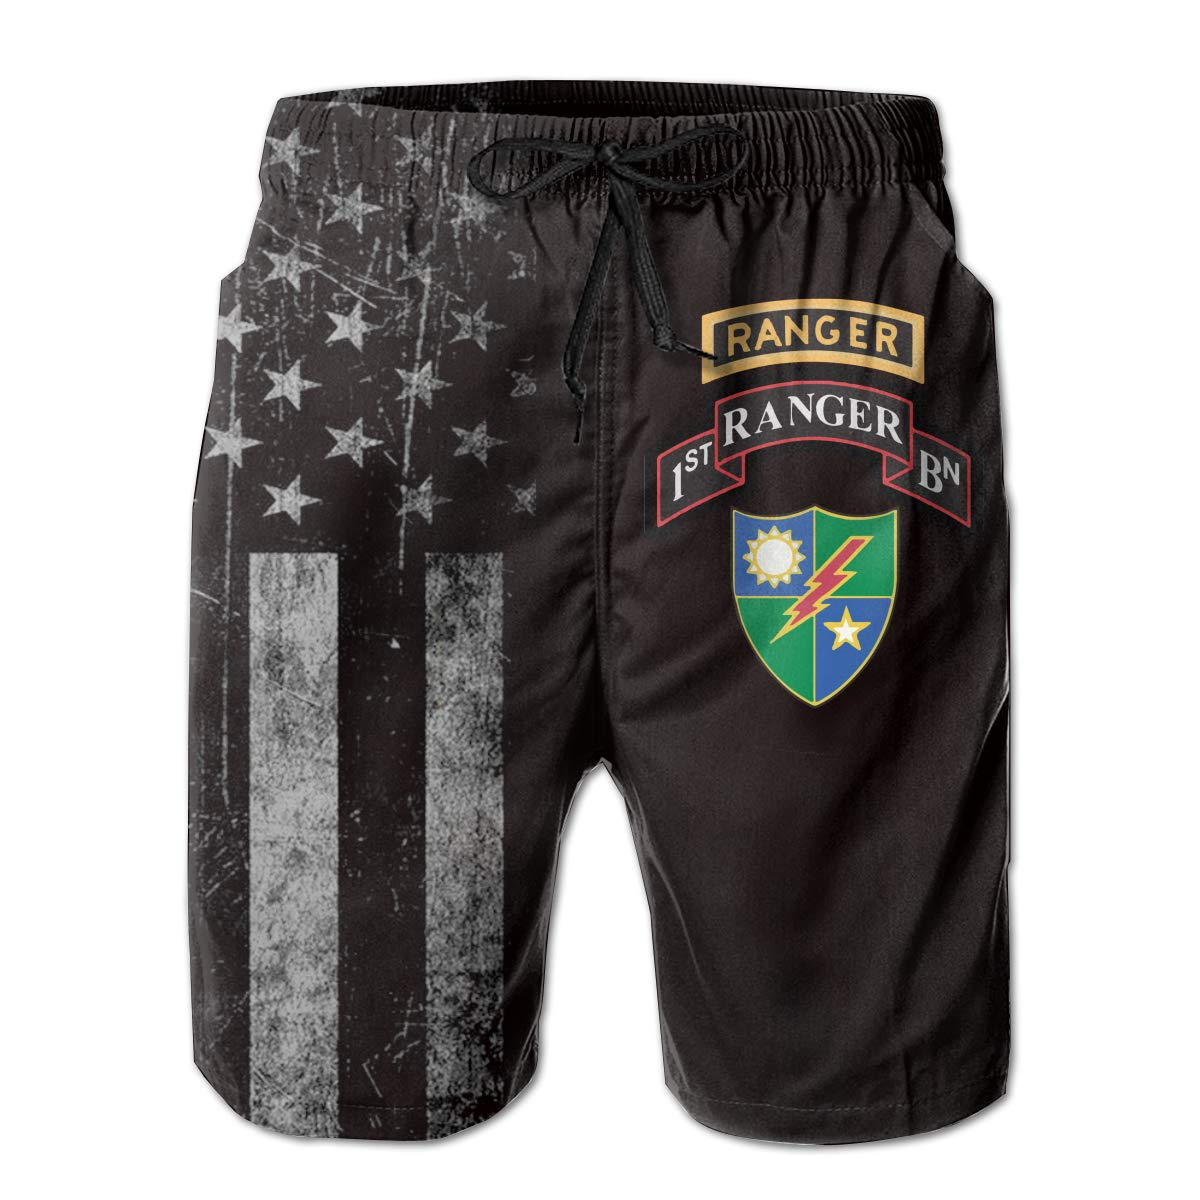 HANINPZ 1st Battalion 75th Ranger Regiment Mens Swim Trunks Beach Short Board Shorts